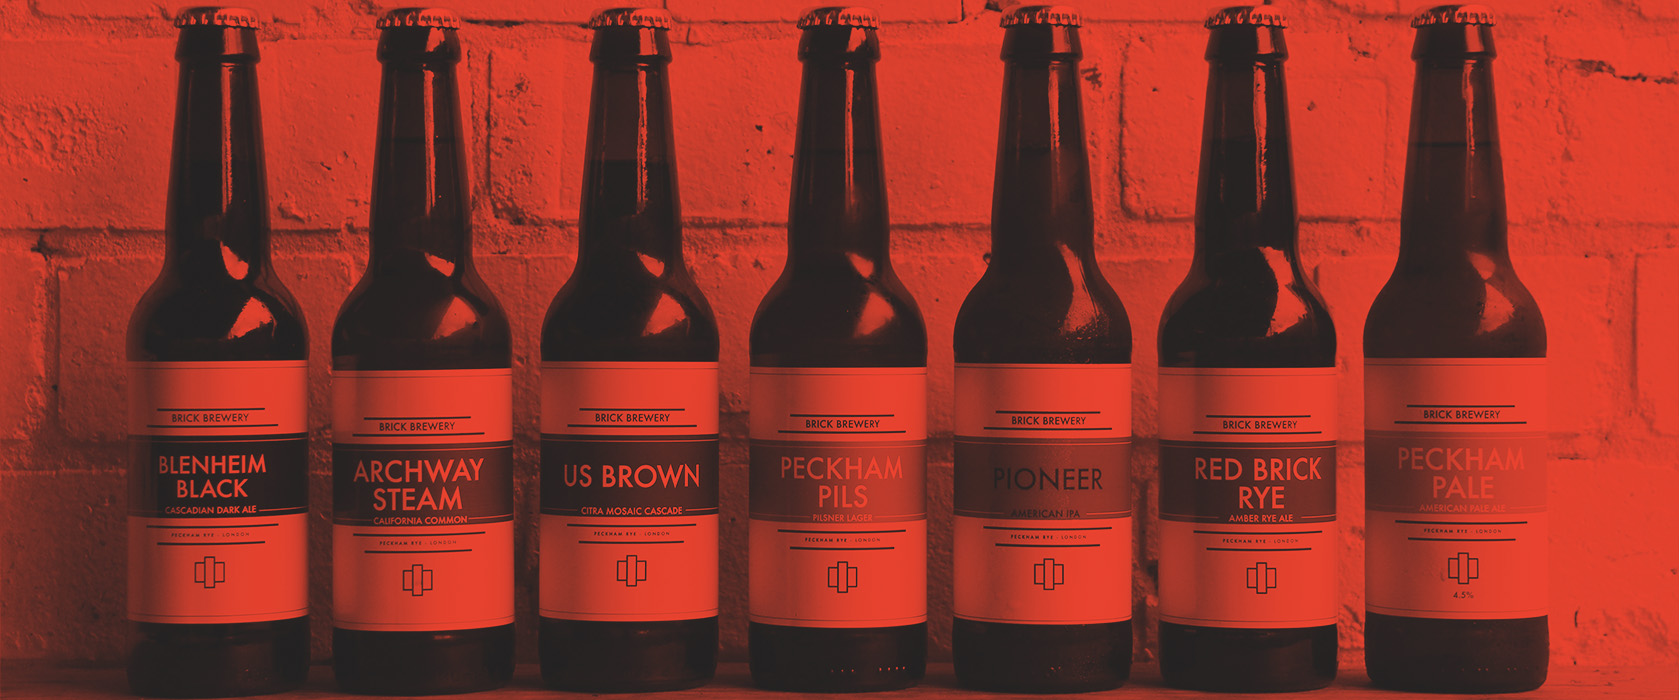 Various bottles of Brick Brewery's Beer